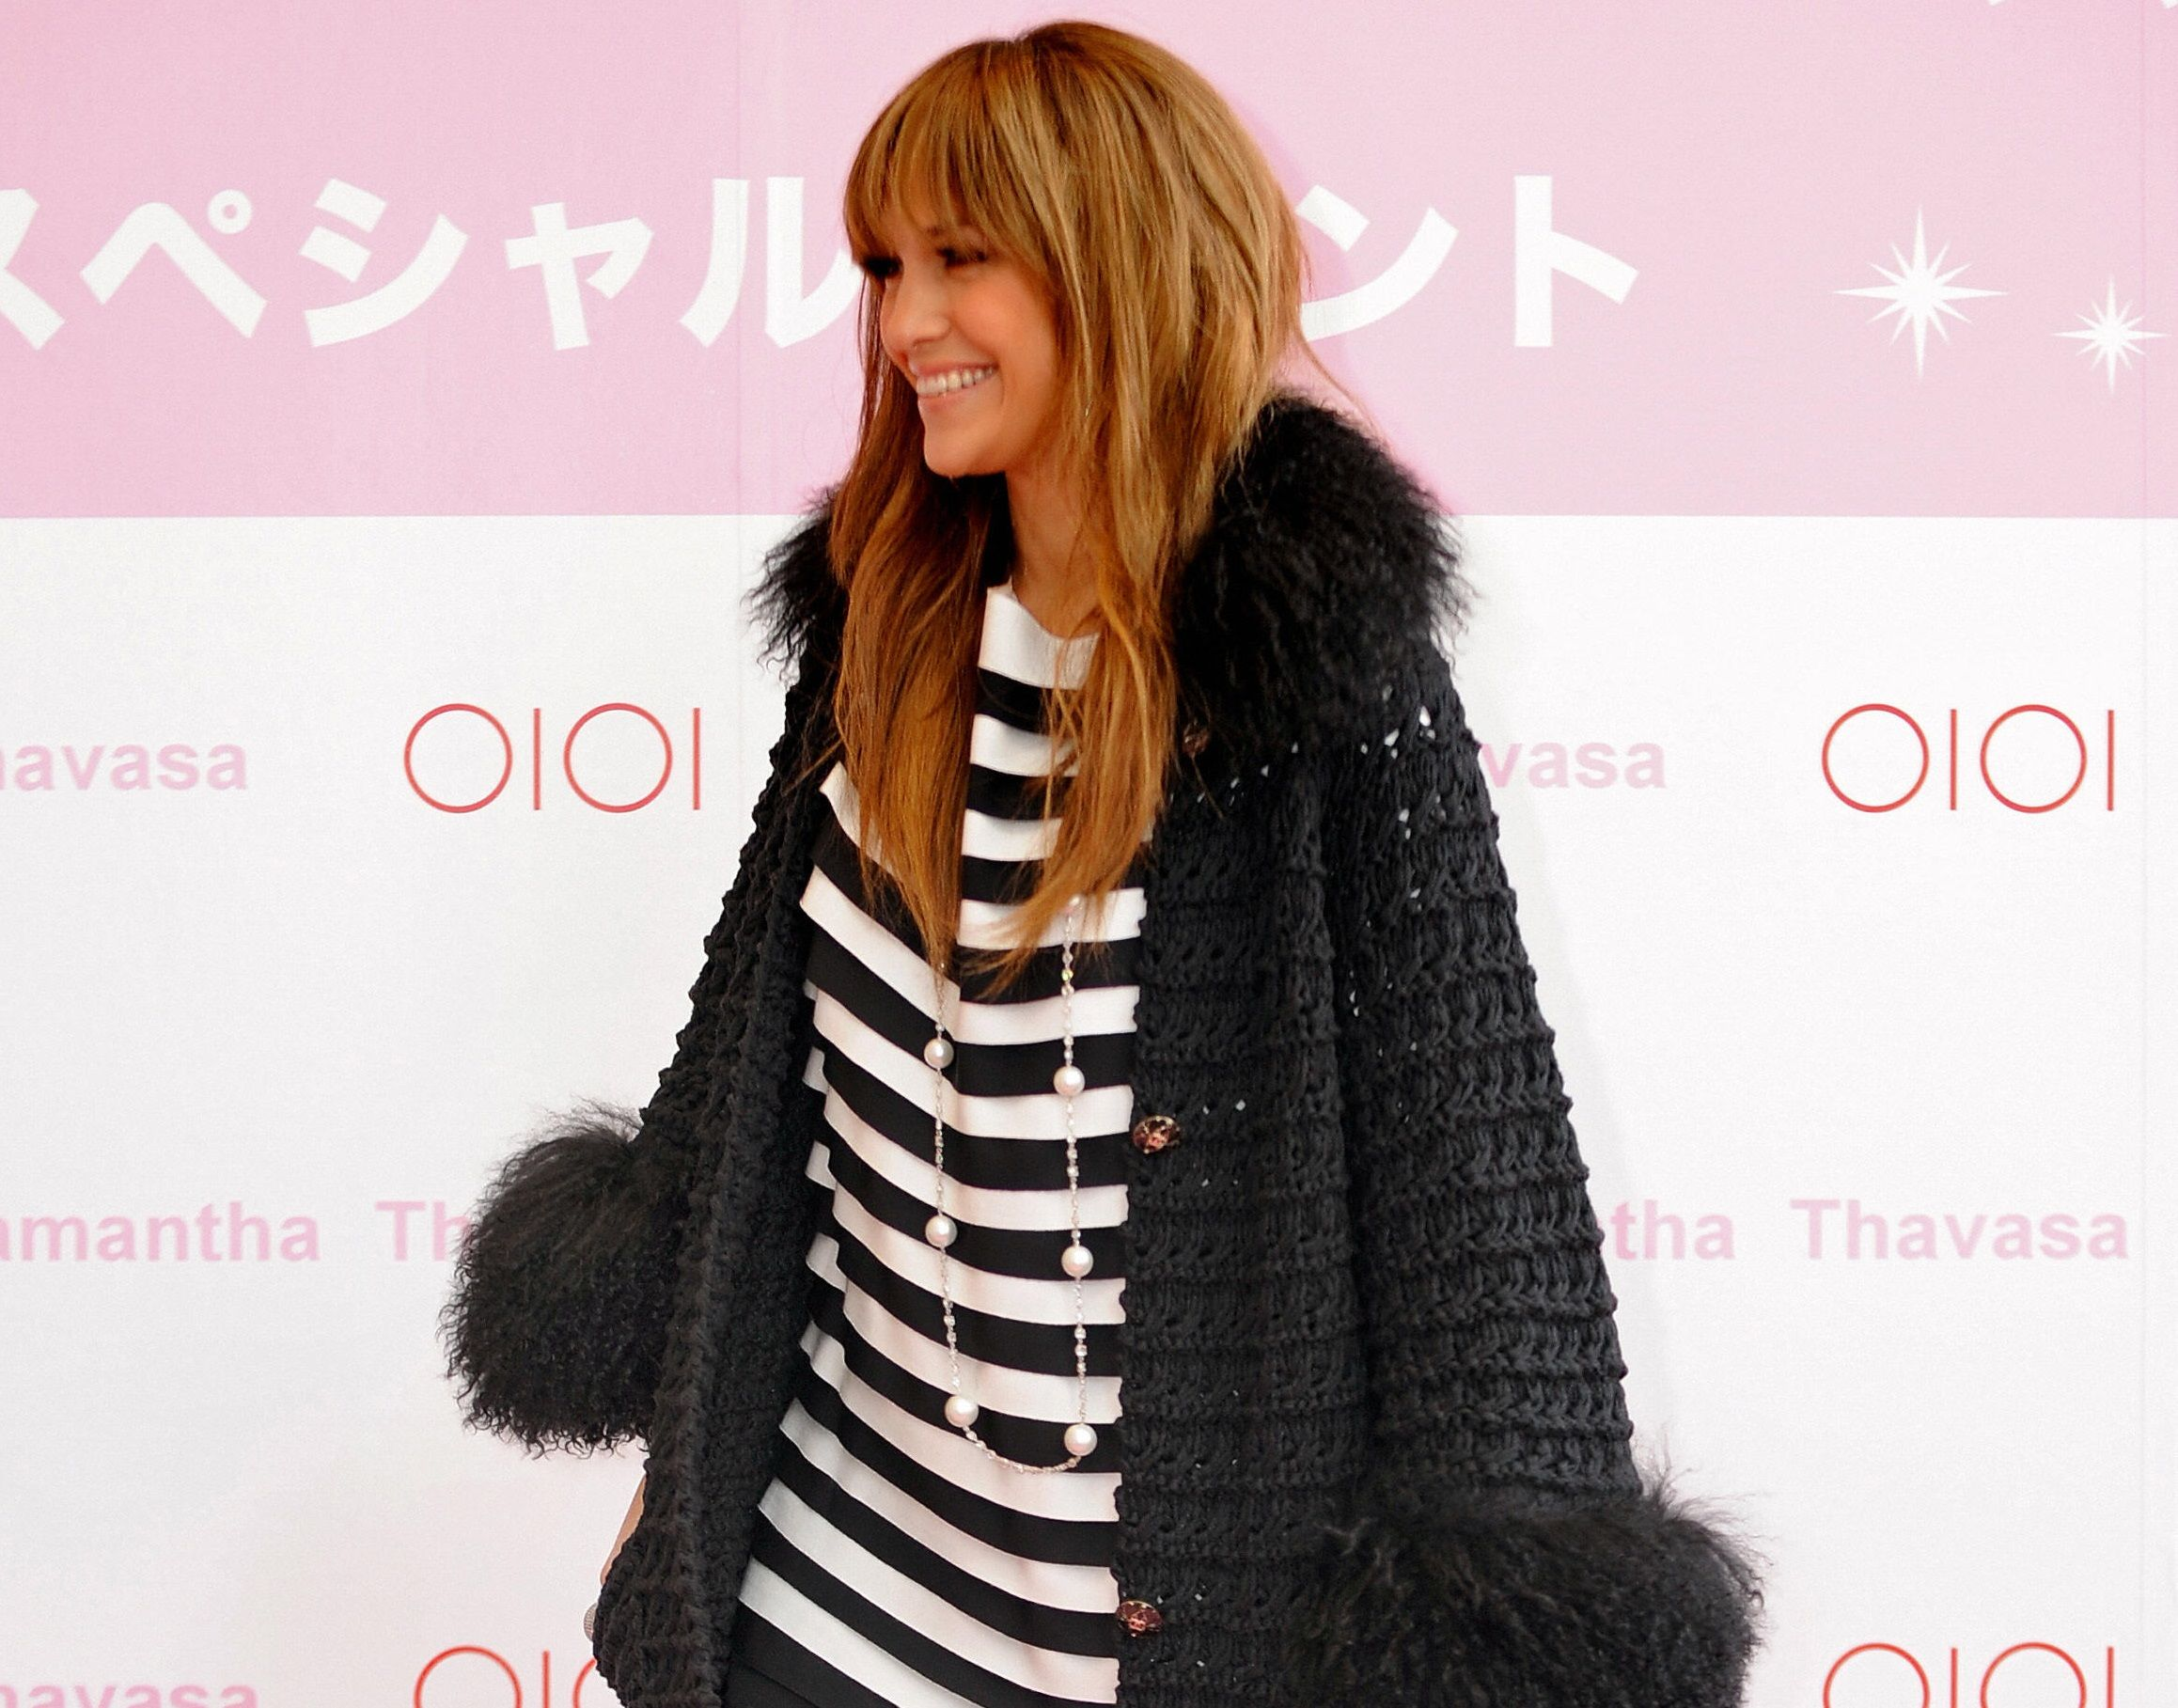 US actress and pop singer Jennifer Lopez makes an appearance at an event by Japanese fashion company Samantha Thavasa in the young fashion district of Shibuya in Tokyo on March 29, 2009.